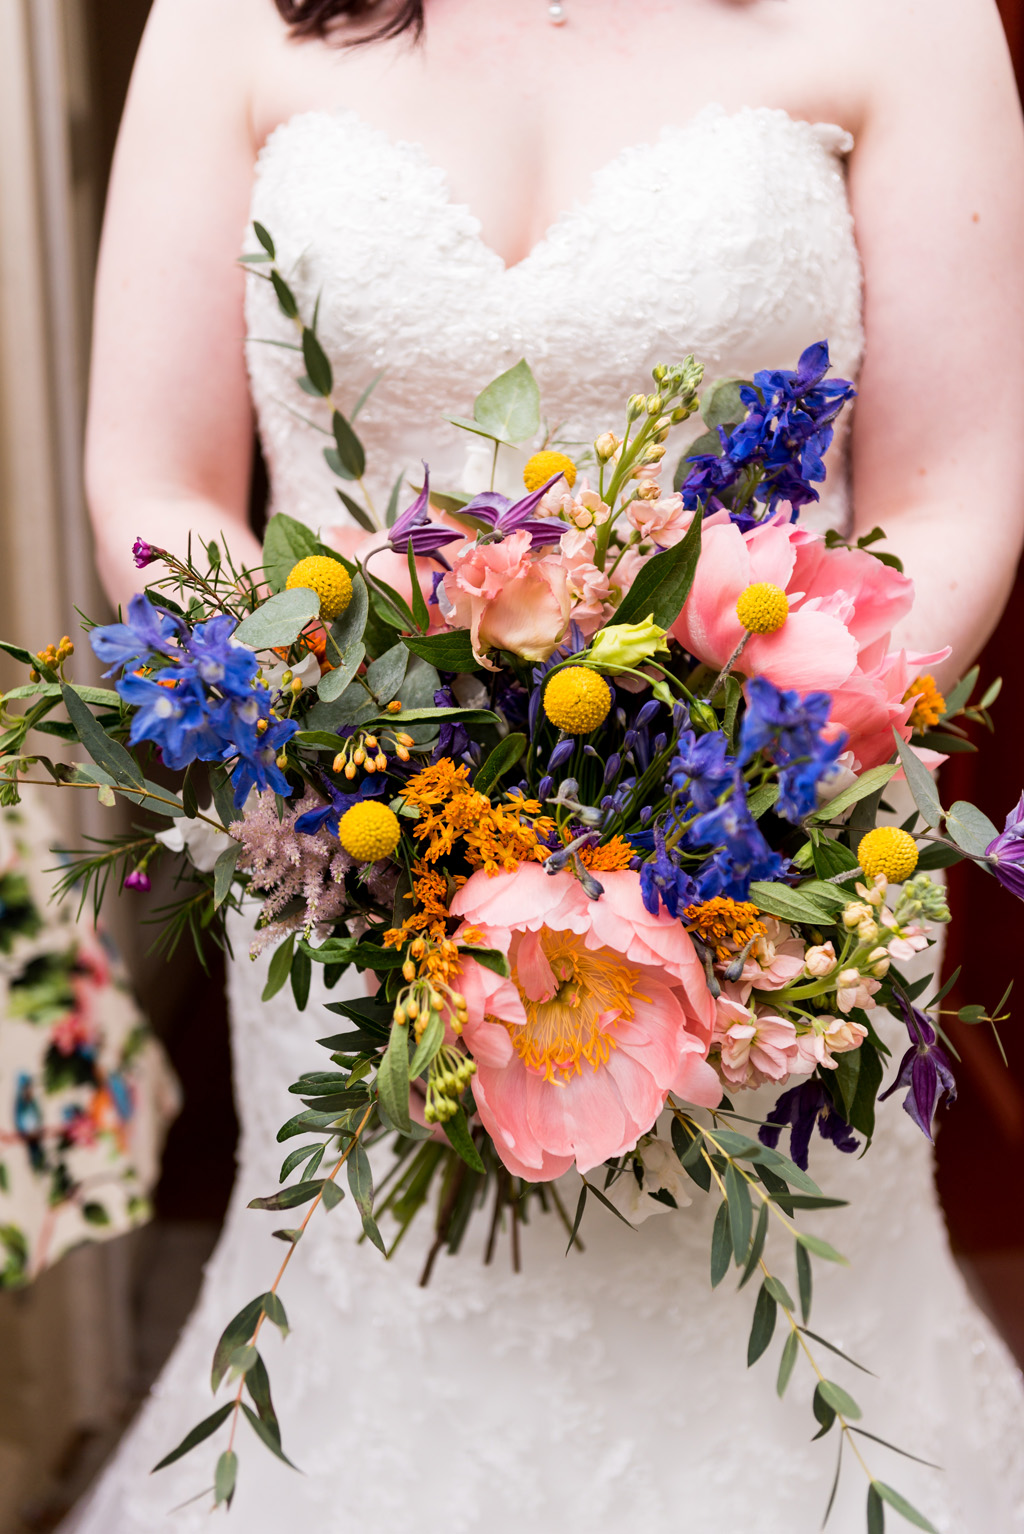 Country flower wedding bouquet by Fantail Designer Florist, photographer credit Shoot Photography